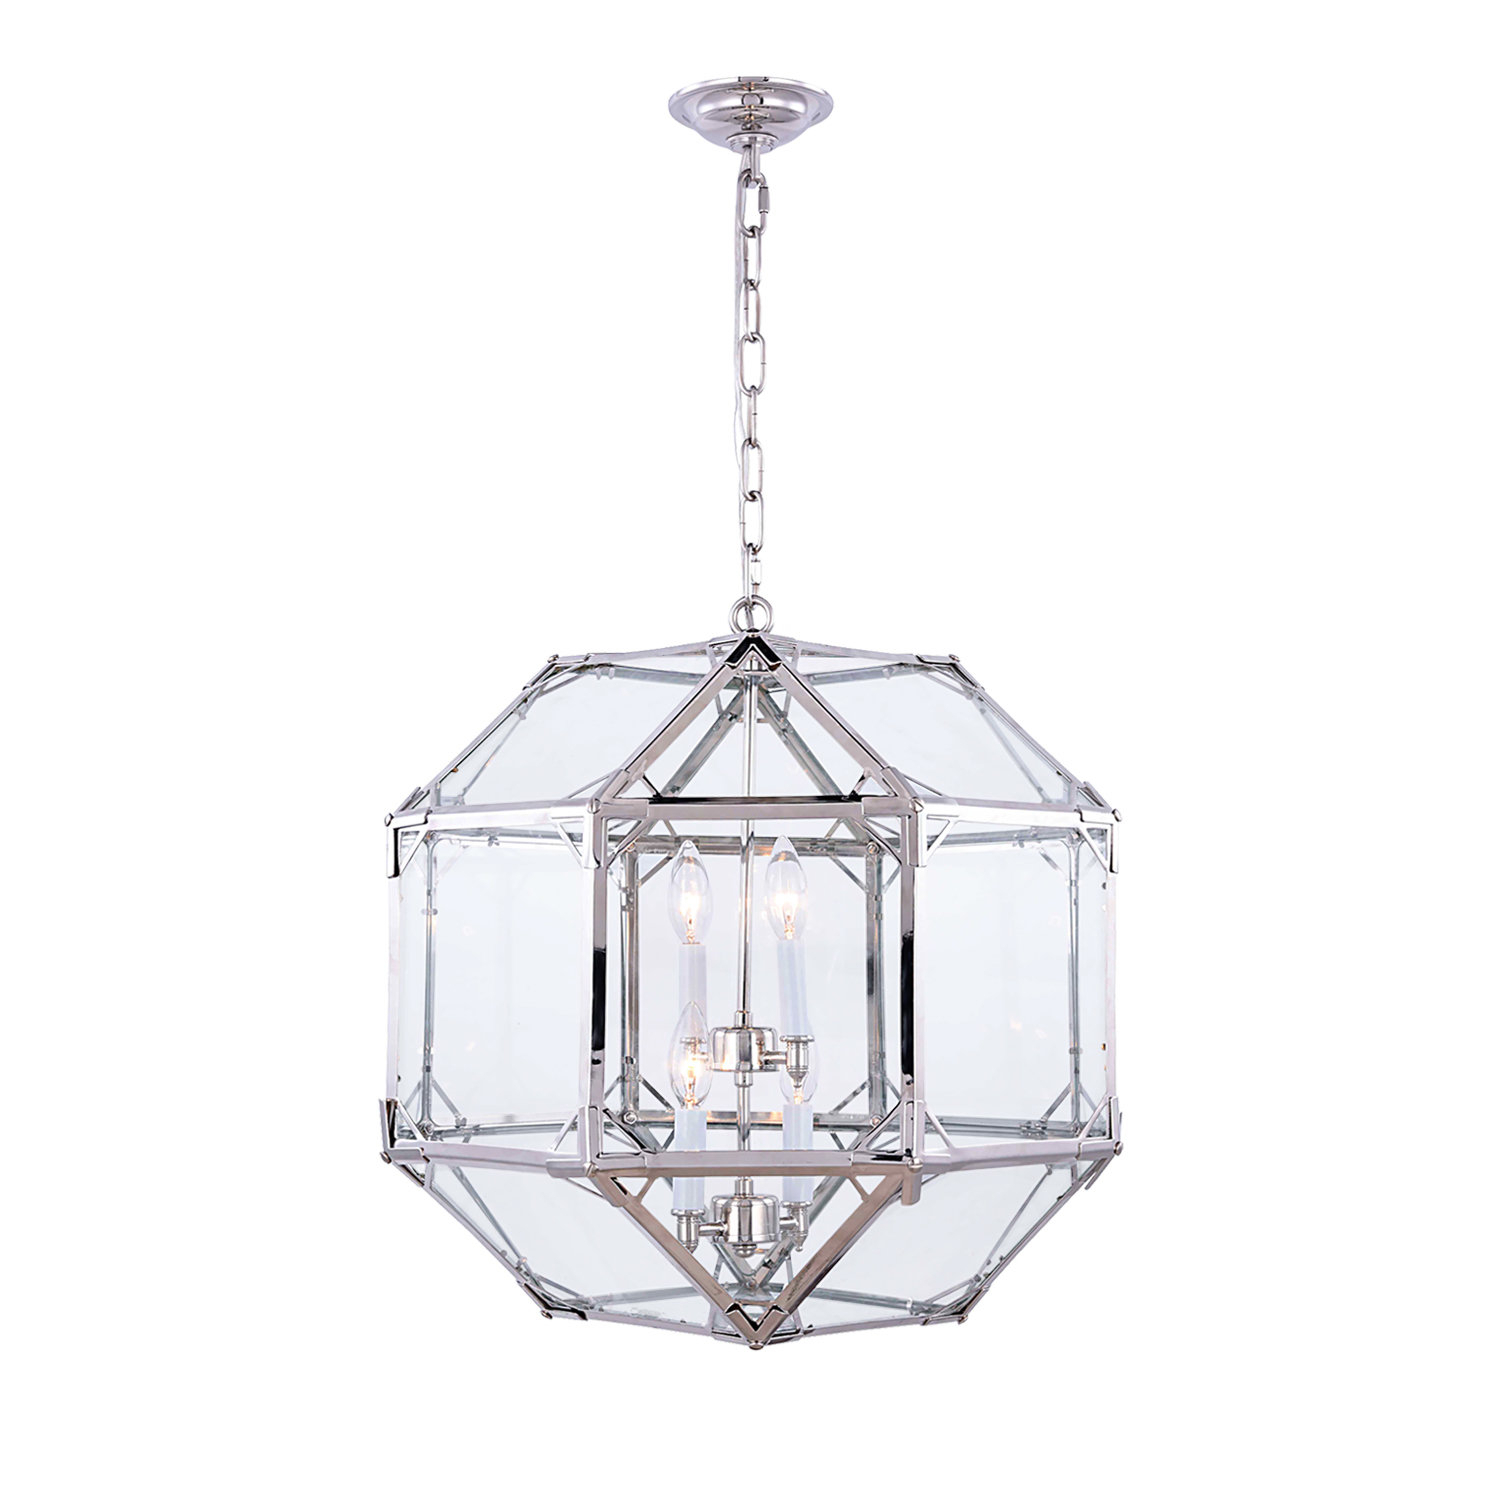 Moritz Octagonal 4-Light Lantern Pendant intended for Isoline 2-Light Lantern Geometric Pendants (Image 20 of 30)